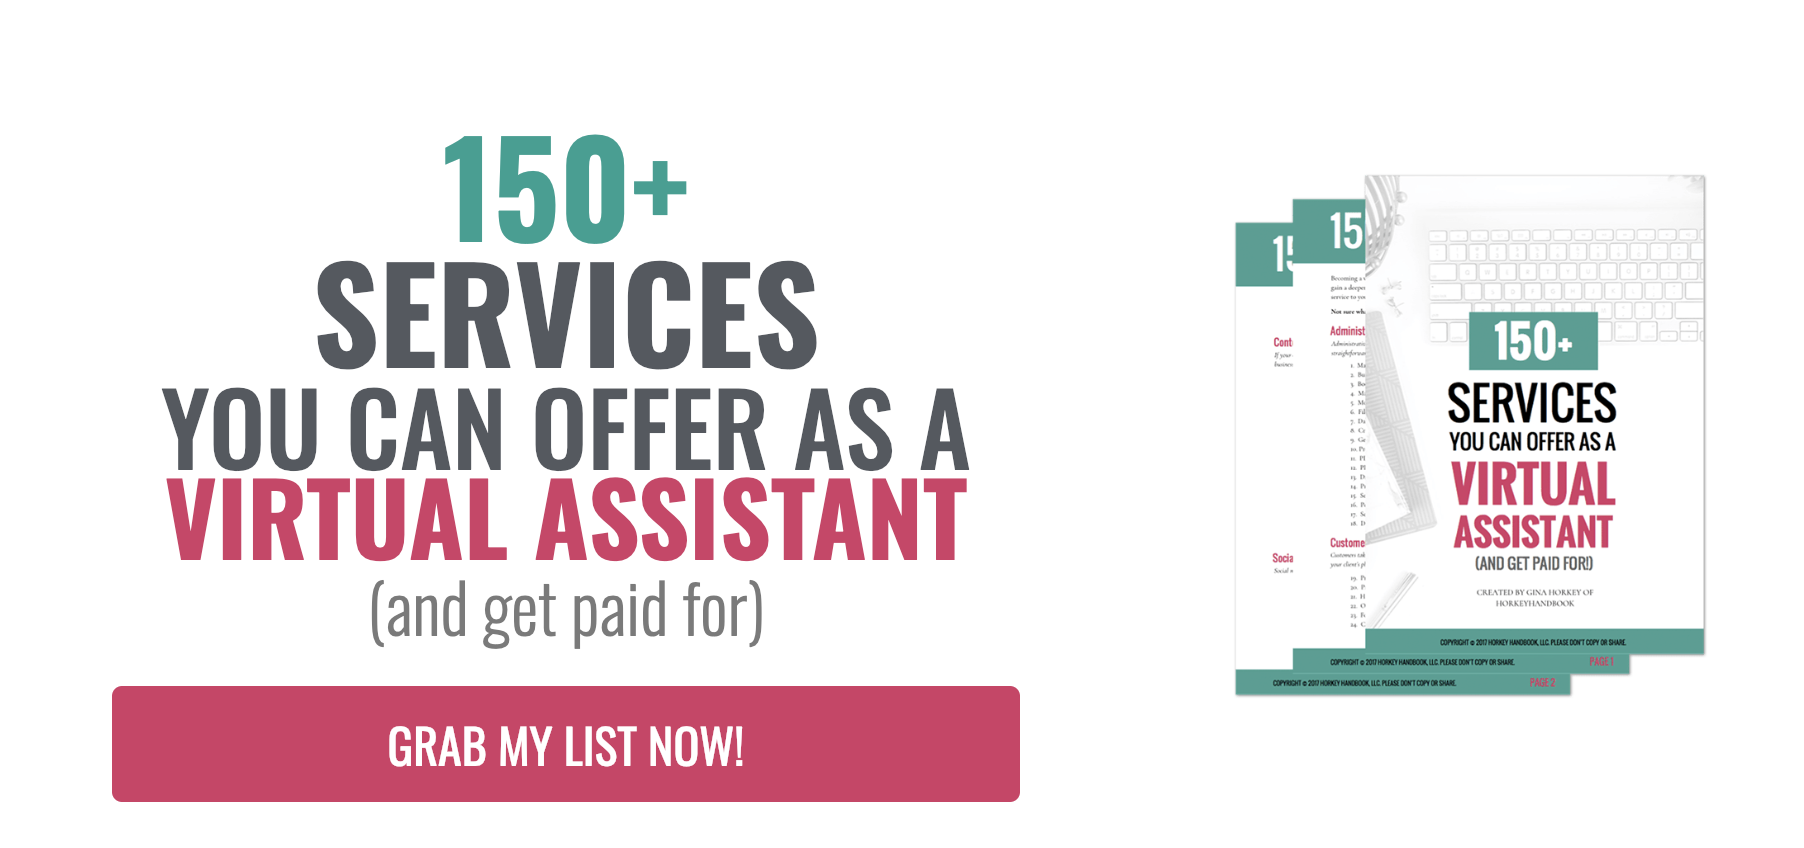 List of 150+ Services You Can offer as a virtual assistant - and get paid for!